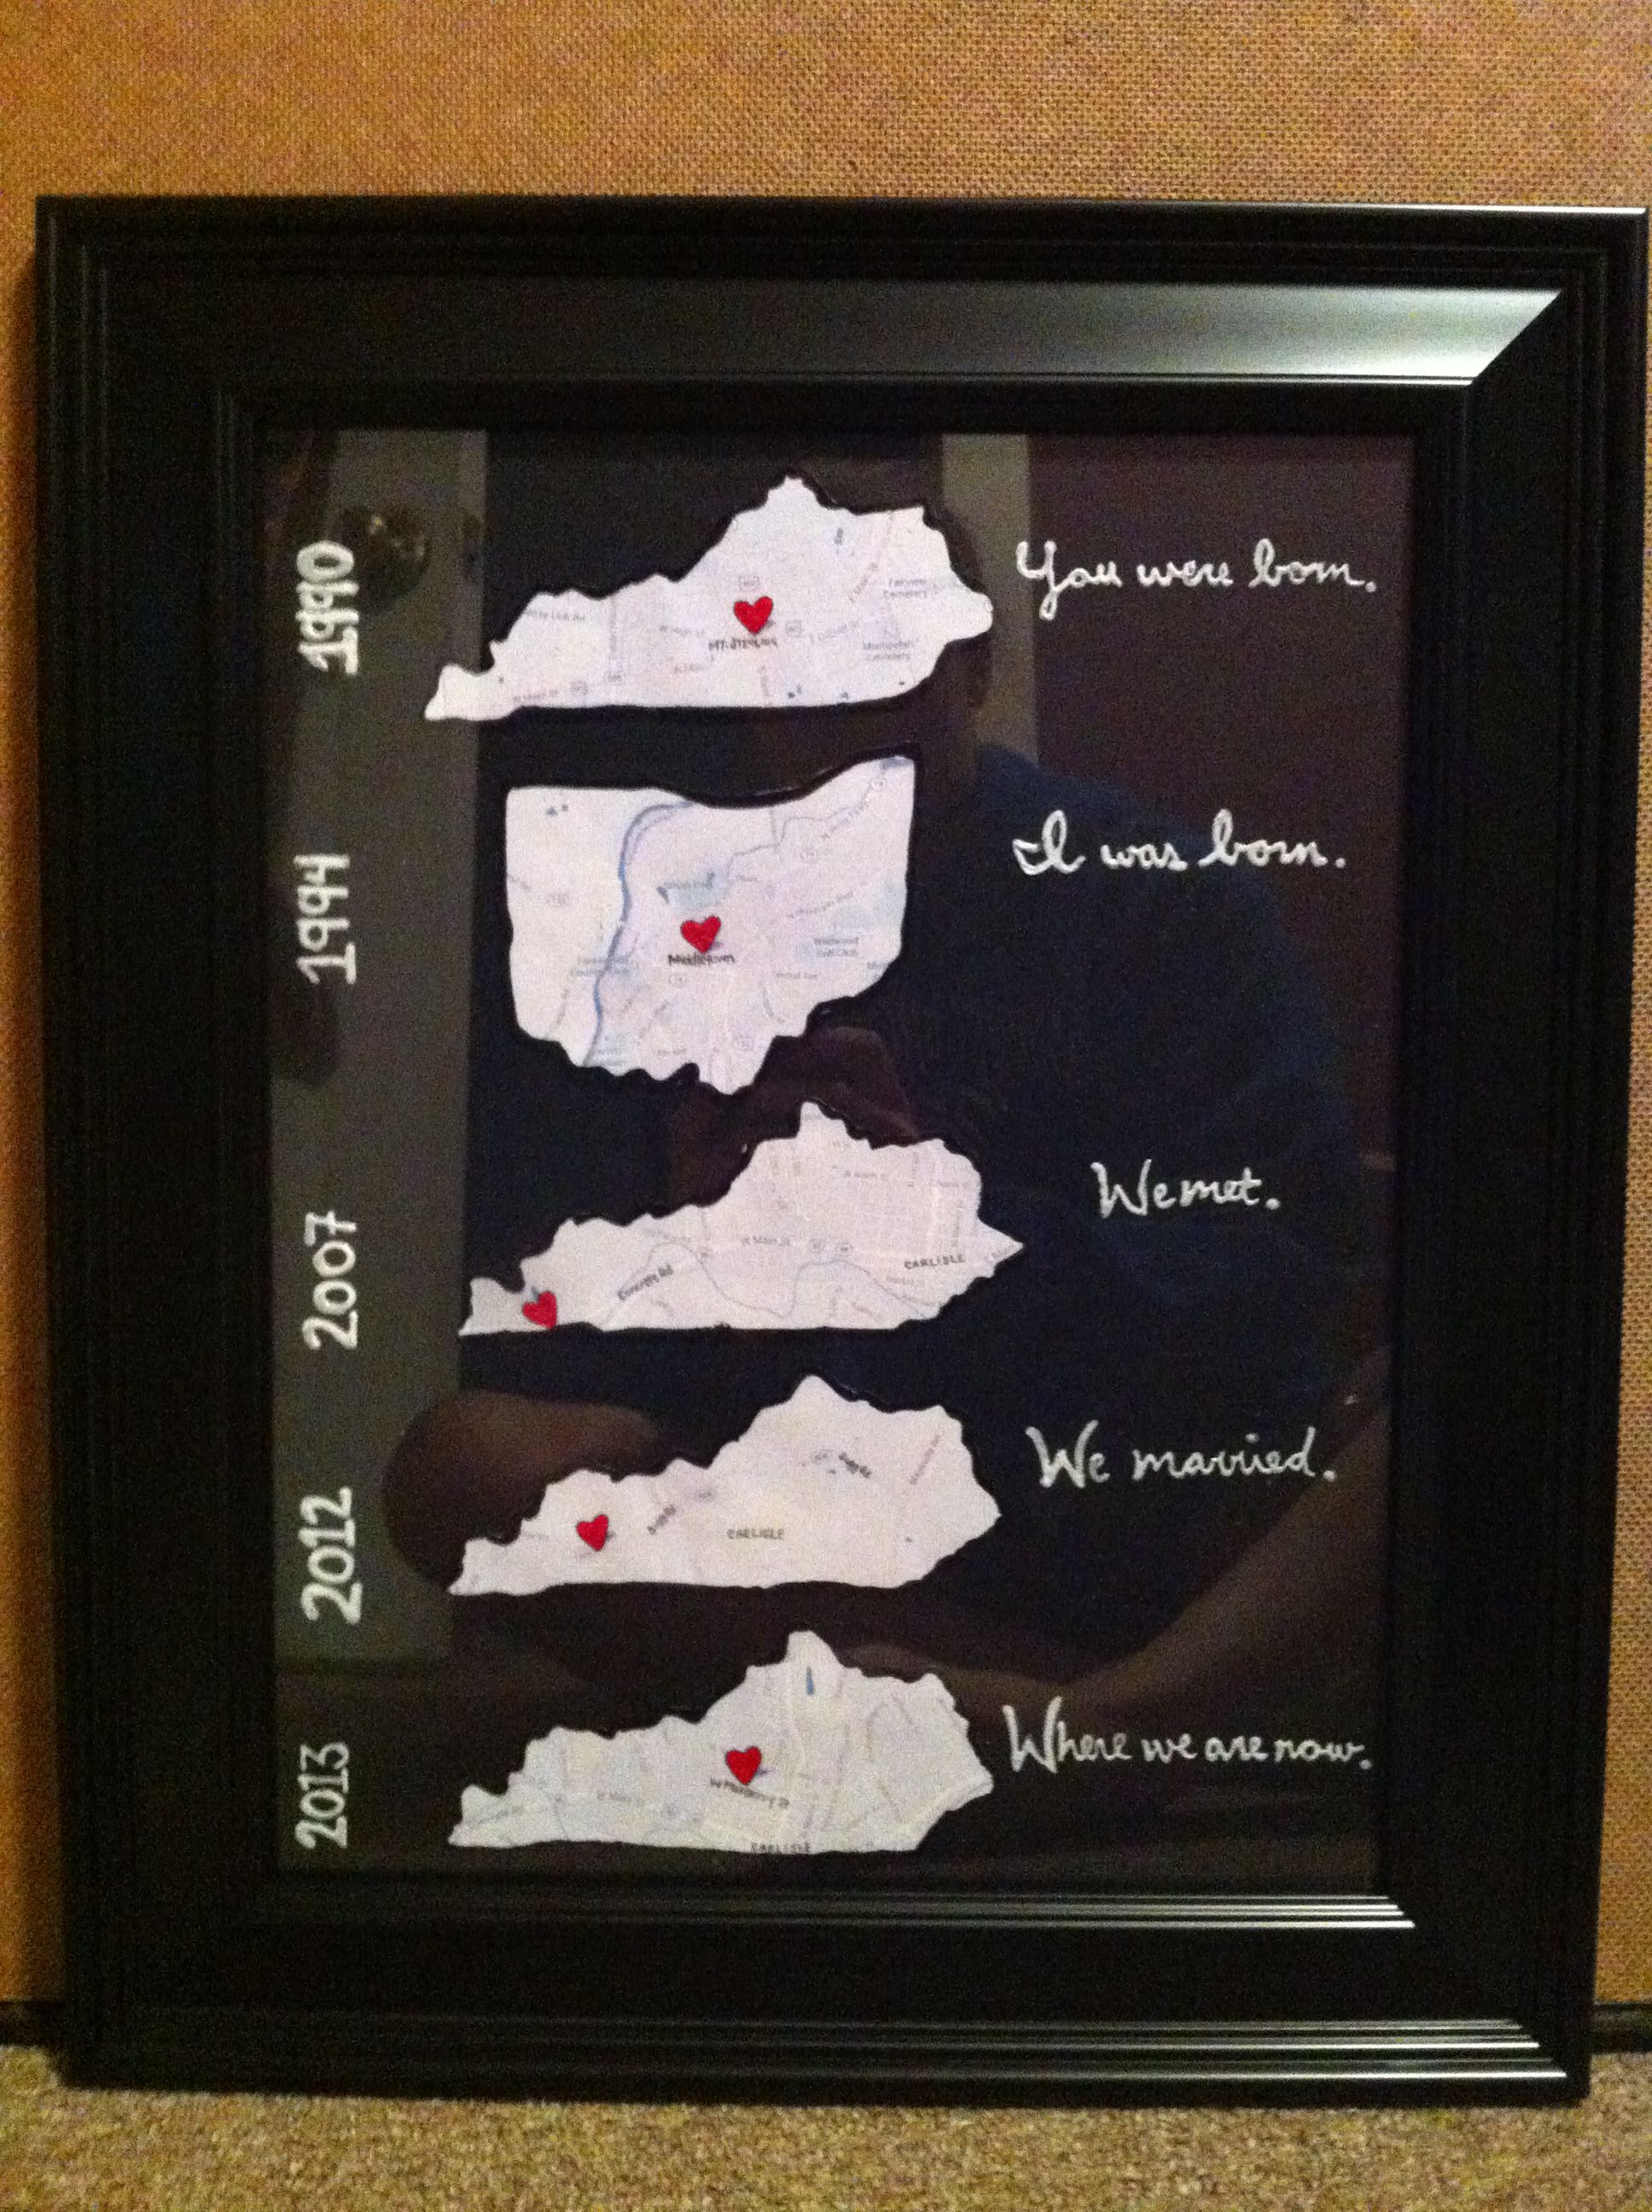 1st year anniversary gift paper maps zoomed in of where